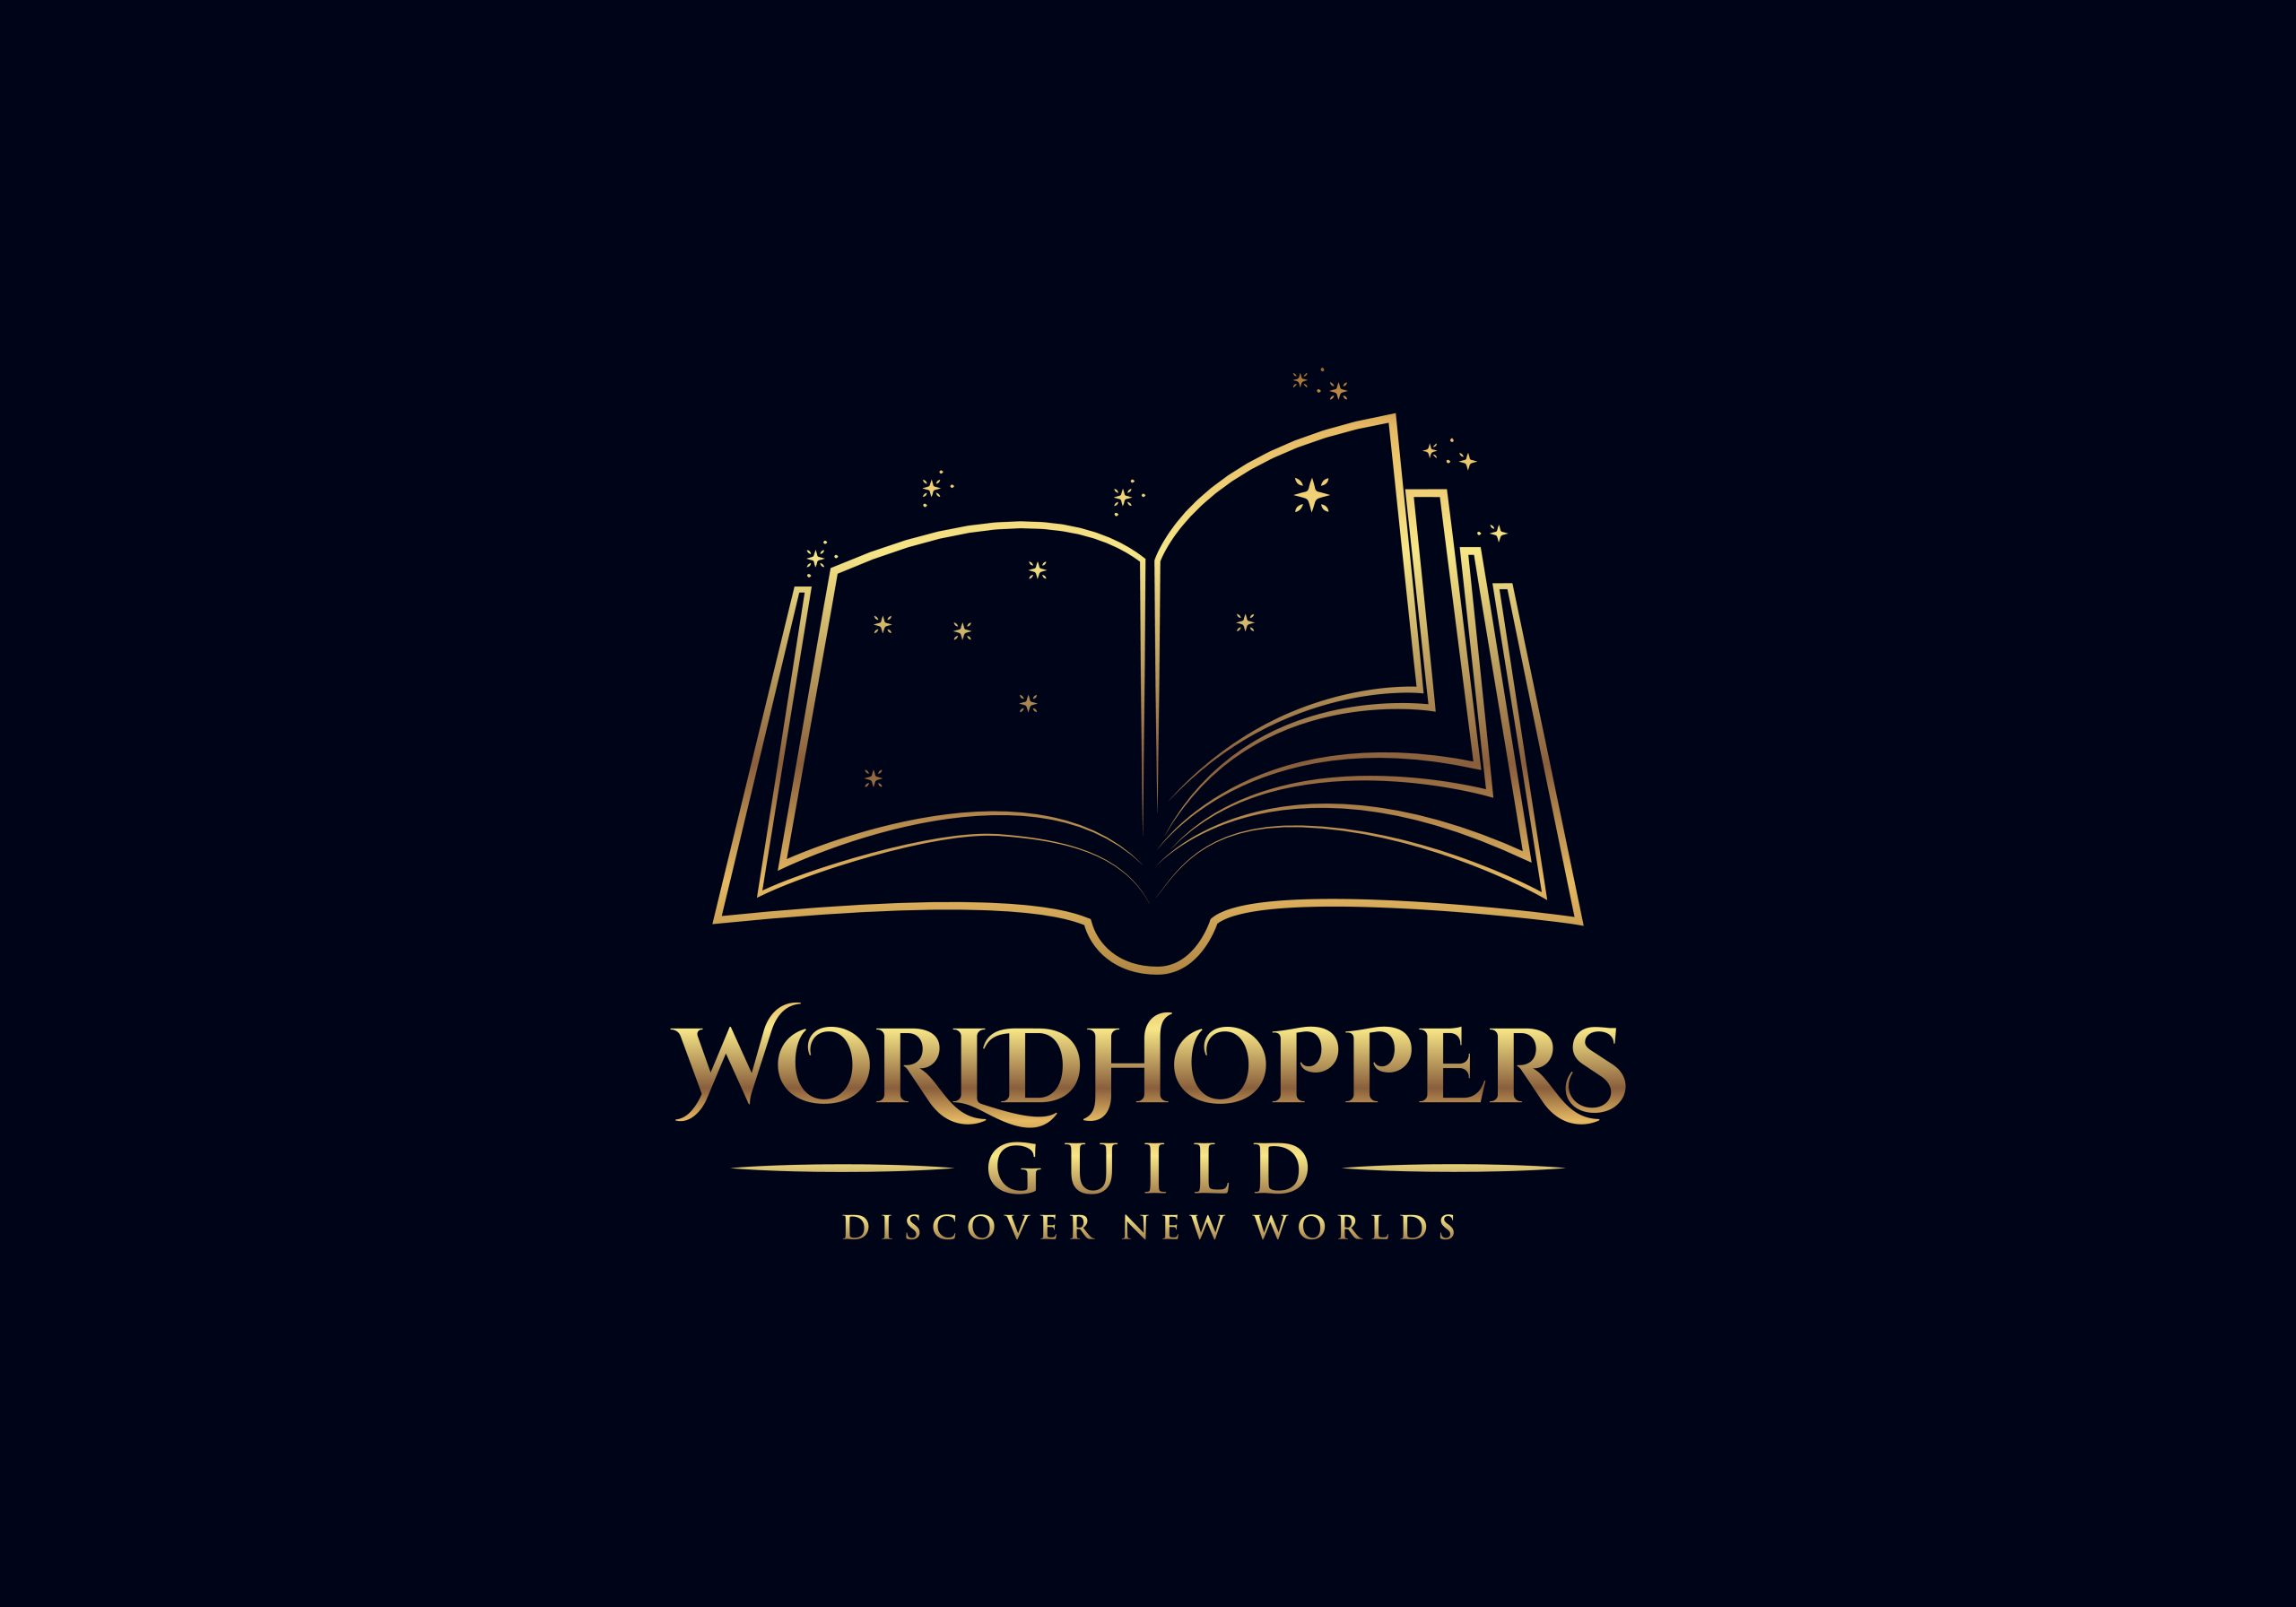 Worldhoppers Guild